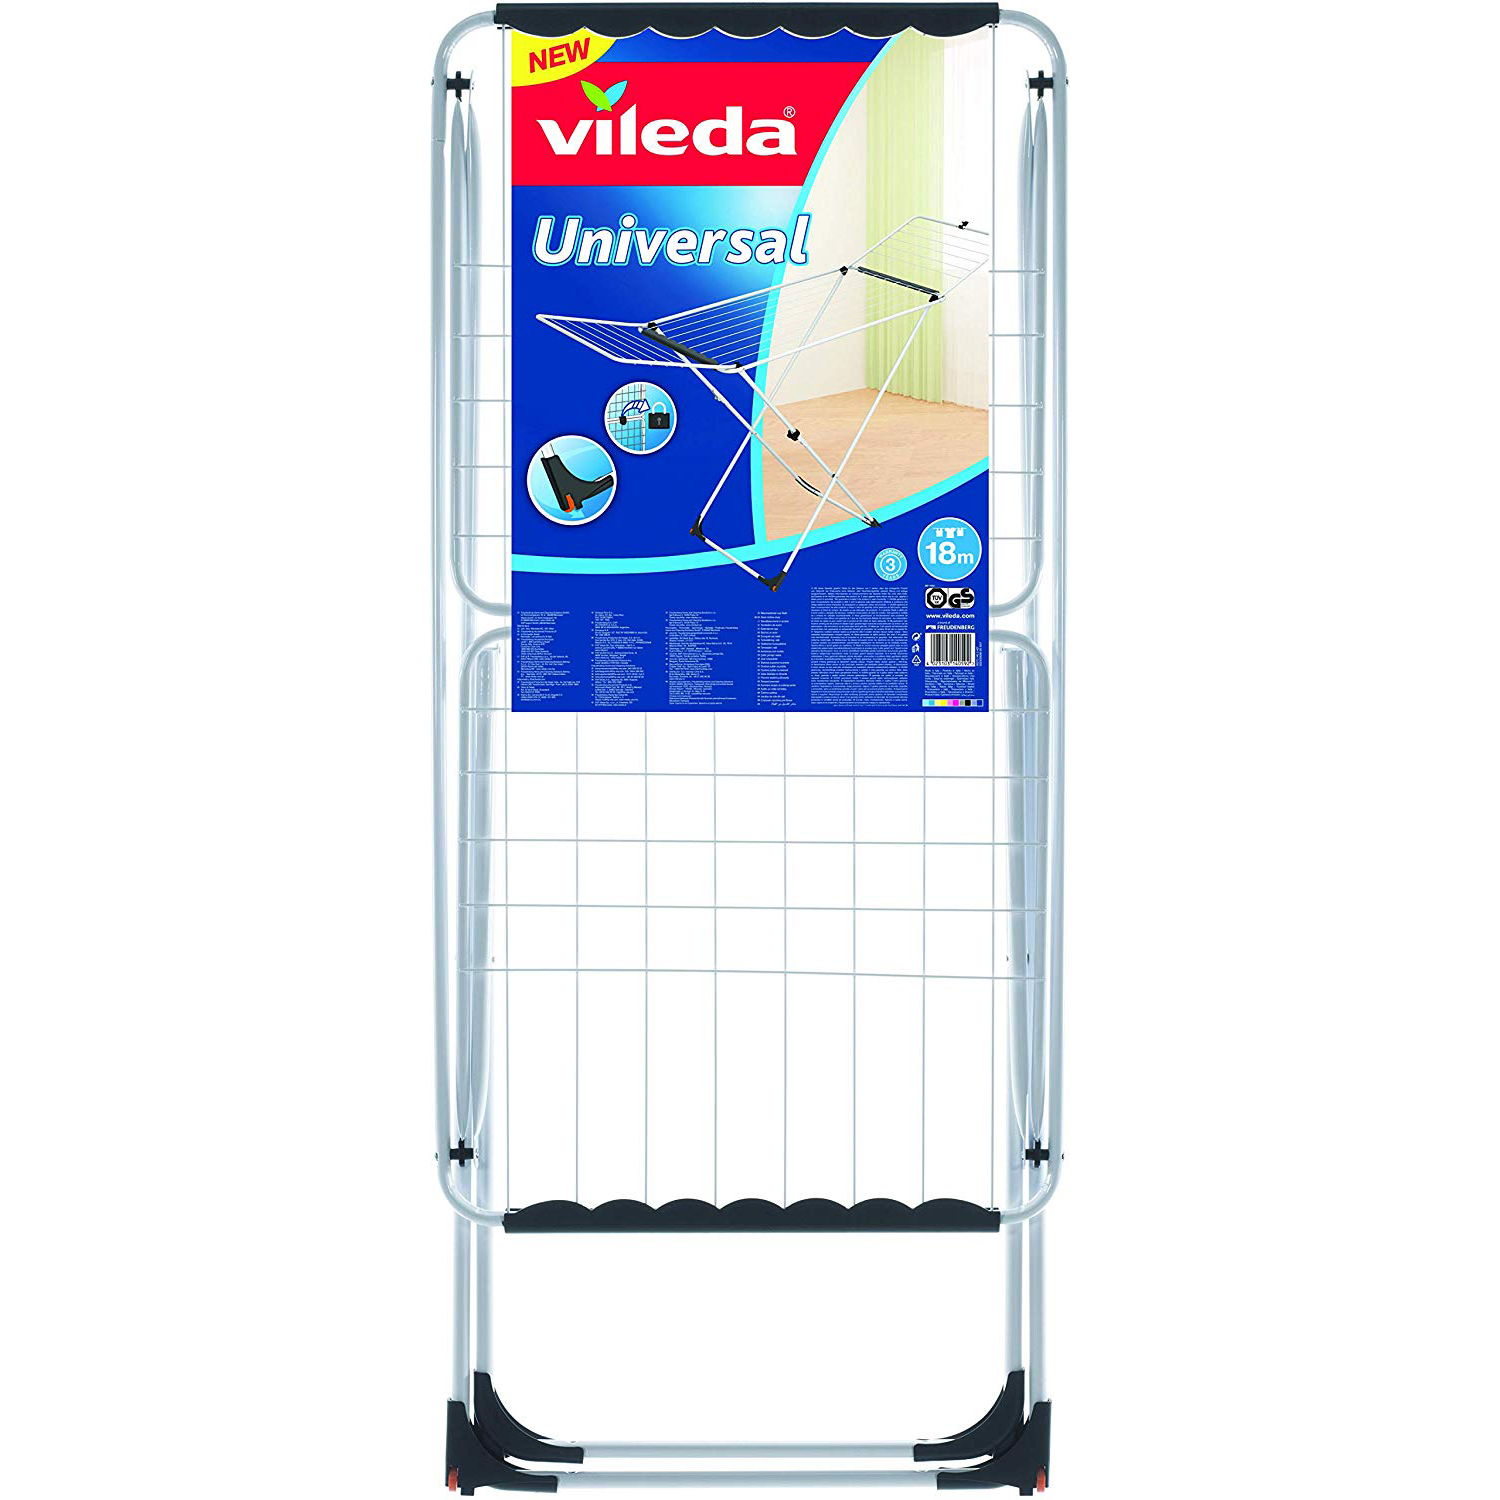 Vileda Universal Steel X-Leg Indoor Cloth Dryer VLID157242 - 18m (pc)